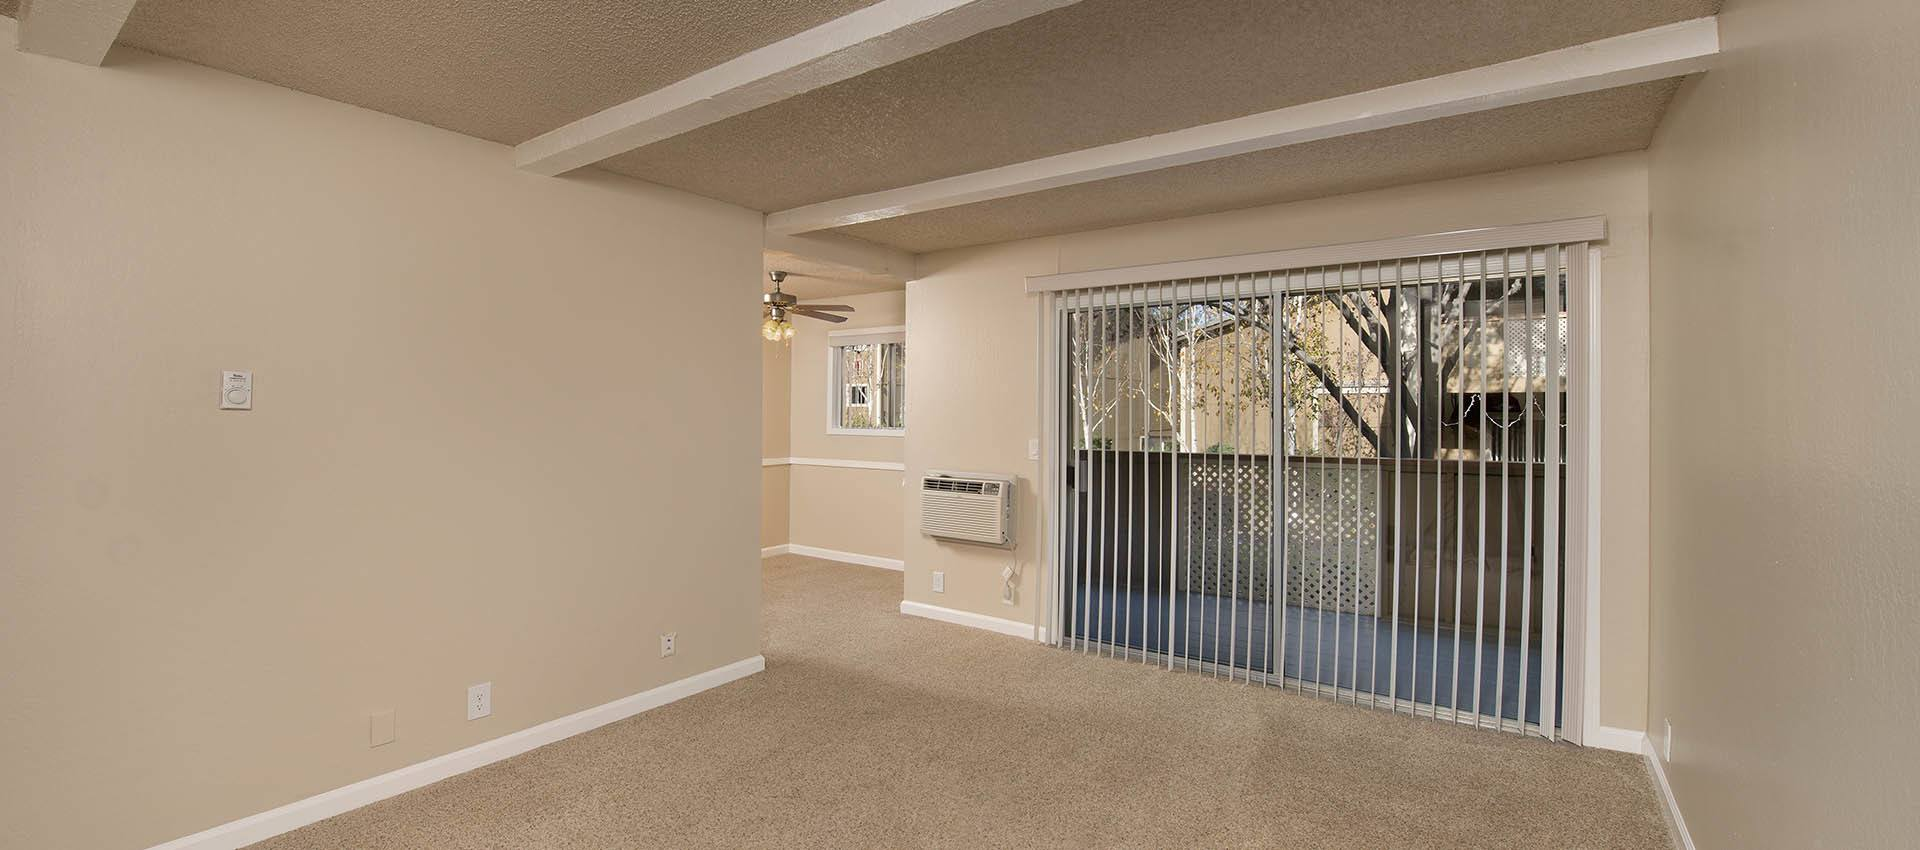 Spacious Living Room at Shadow Oaks Apartment Homes in Cupertino